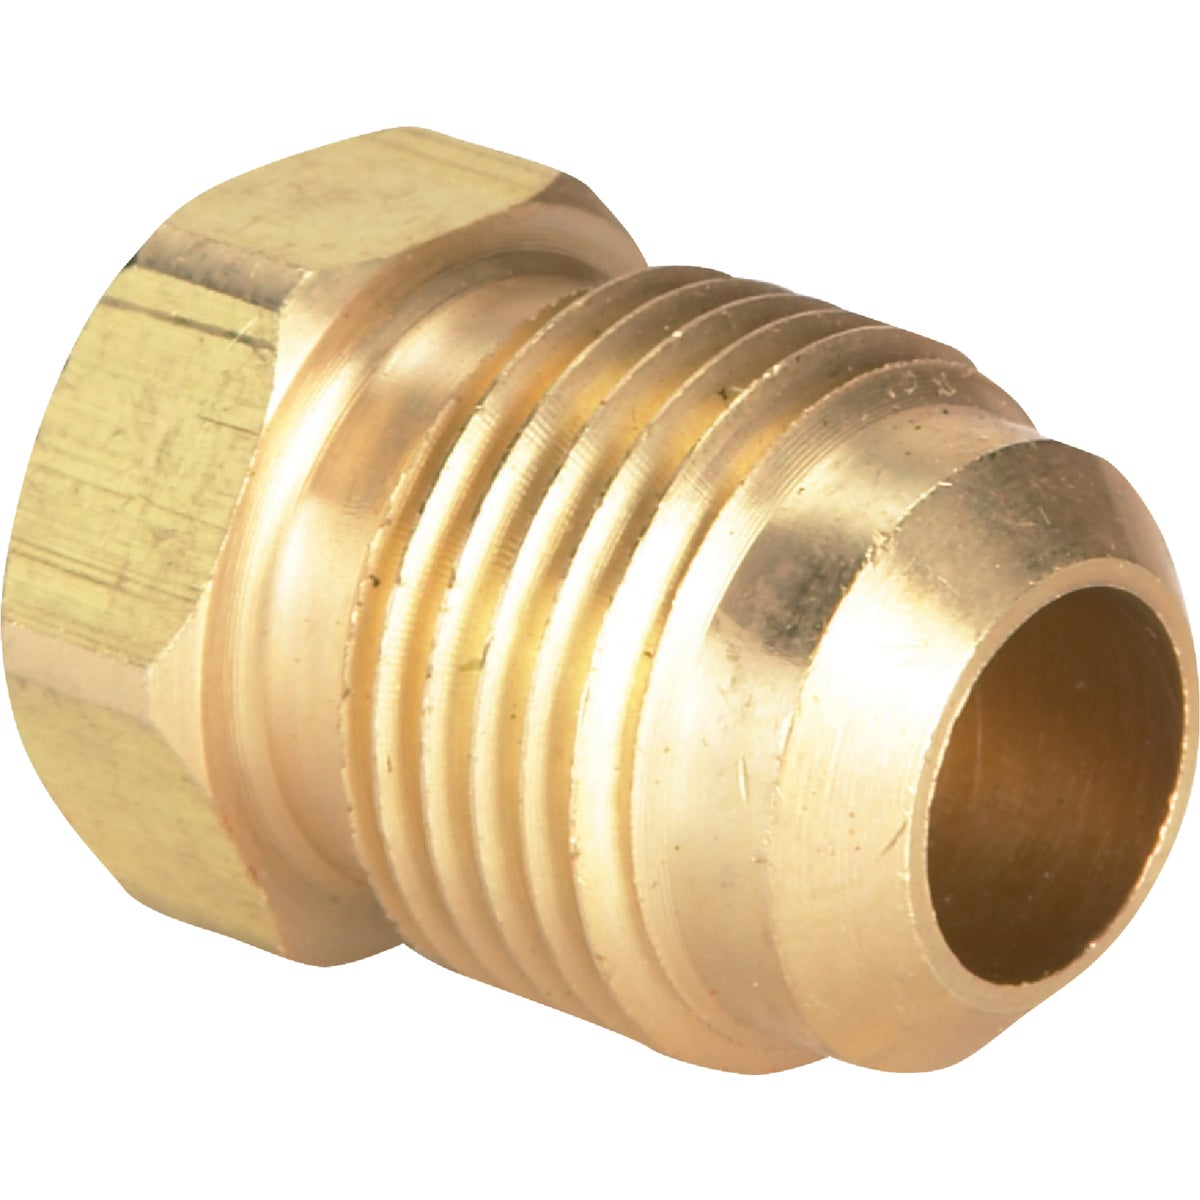 "1/2"" FLARE PLUG - 459033 by Do it Best"